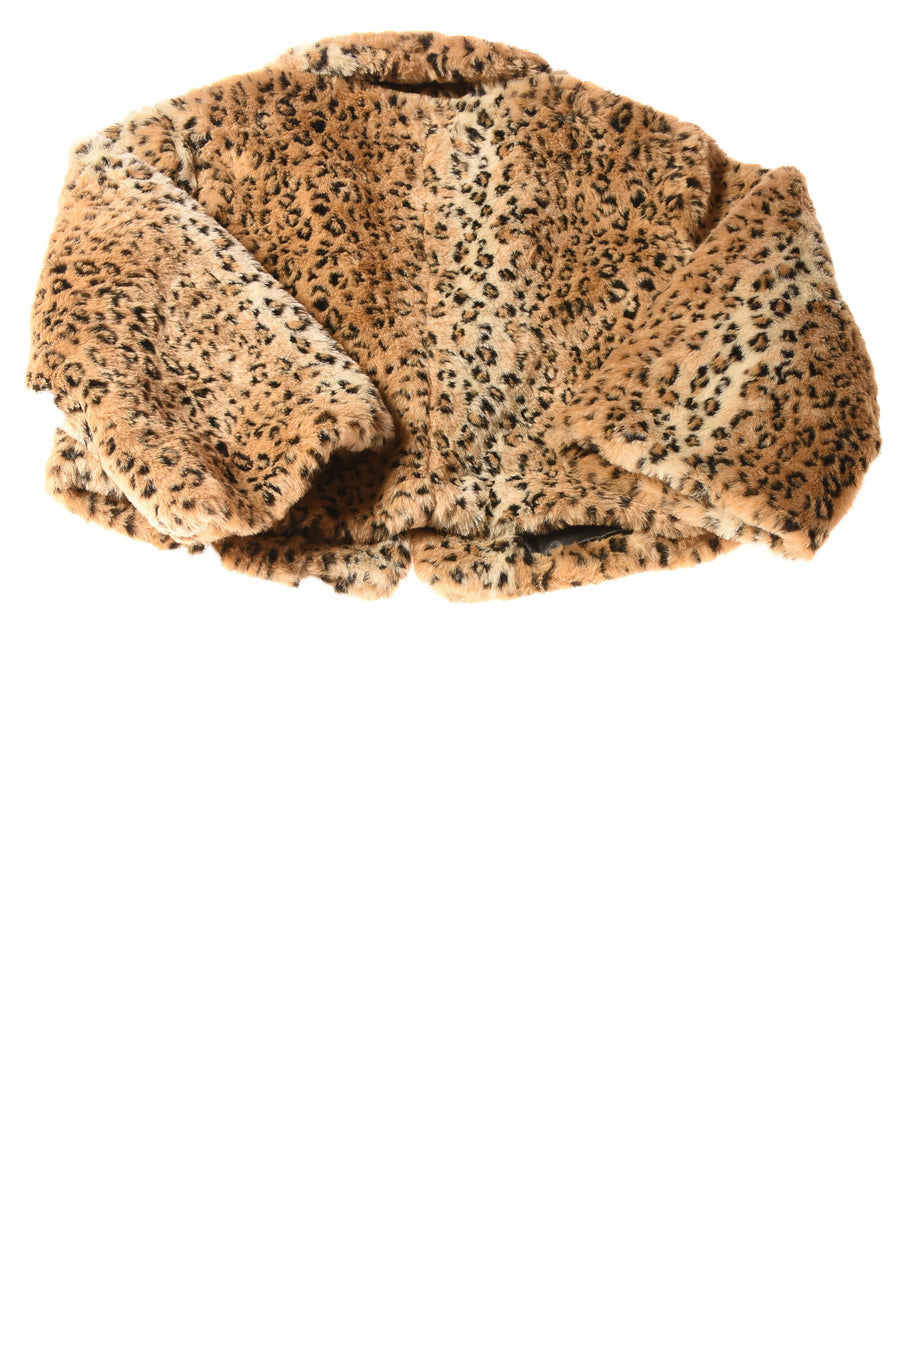 NEW Mossimo Women's Coat X-Large Brown / Leopard Print